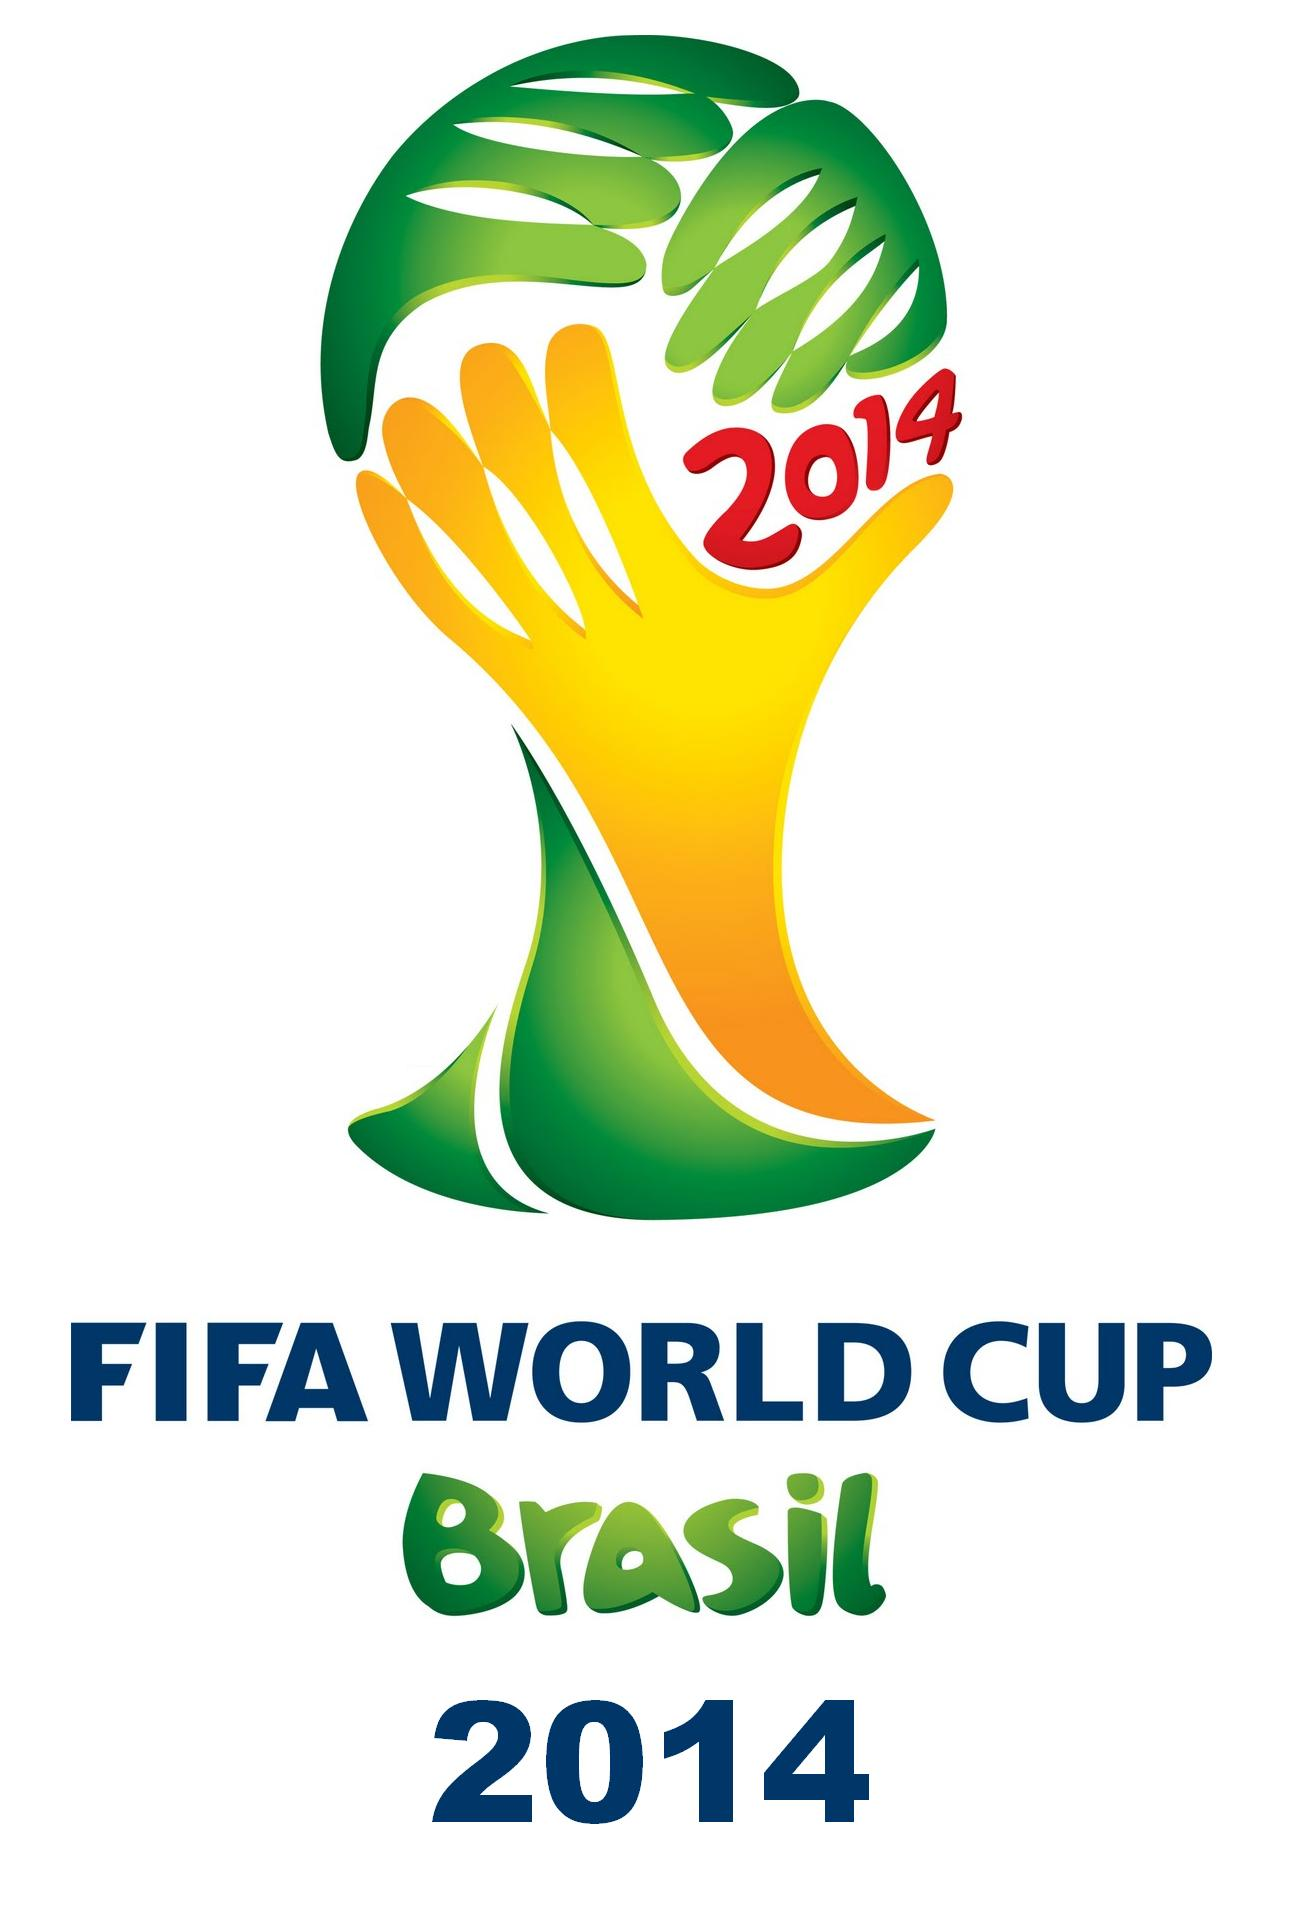 world cup 2014 in brazil informative Brazil world cup logo 2014 the logo's interlinking hands in the yellow and green of brazil and shaped like a trophy aim to enhance brazil's image as a warm, hospitable nation the design is taken from an iconic photograph of three hands triumphantly raising the world cup.